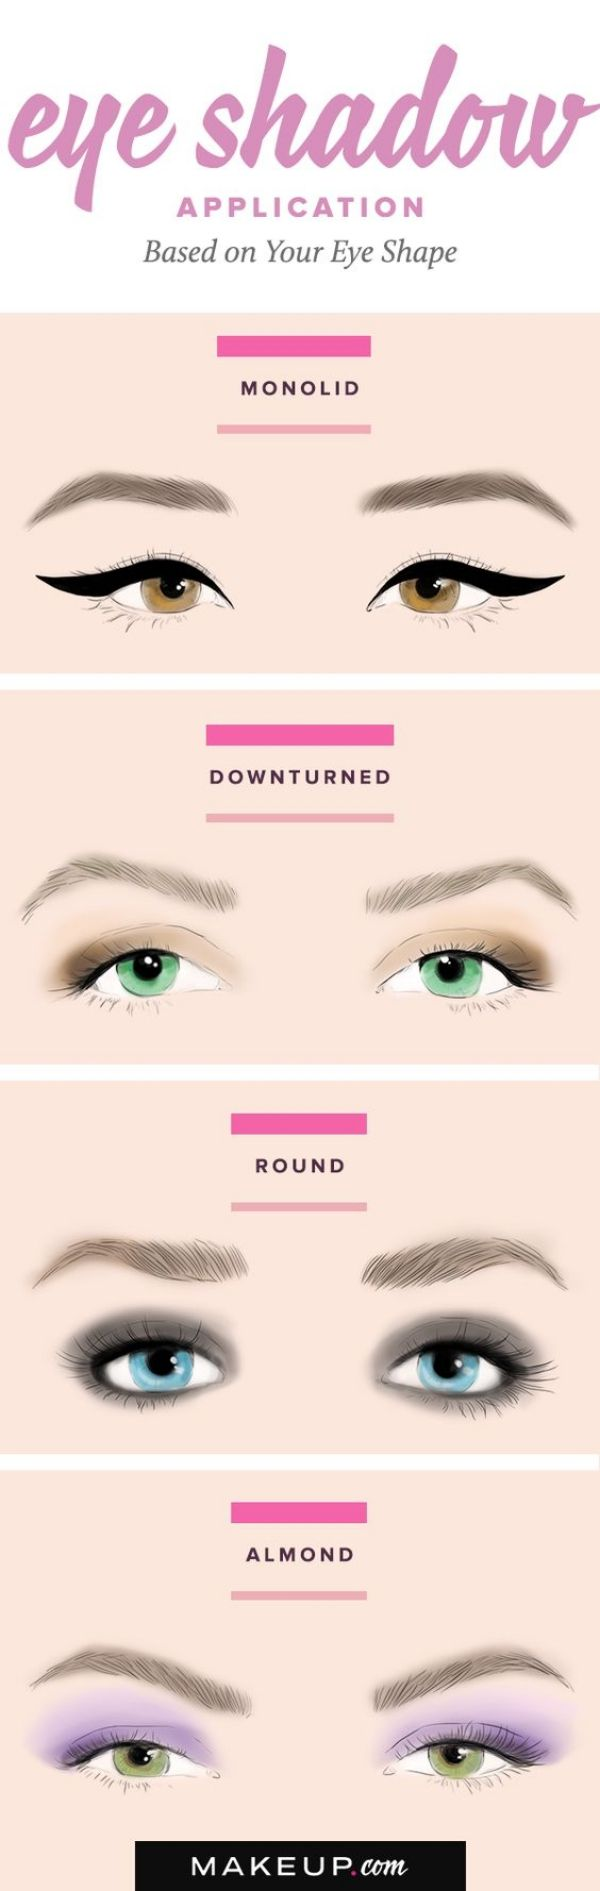 How to Find the Most Flattering Makeup Colors forYou